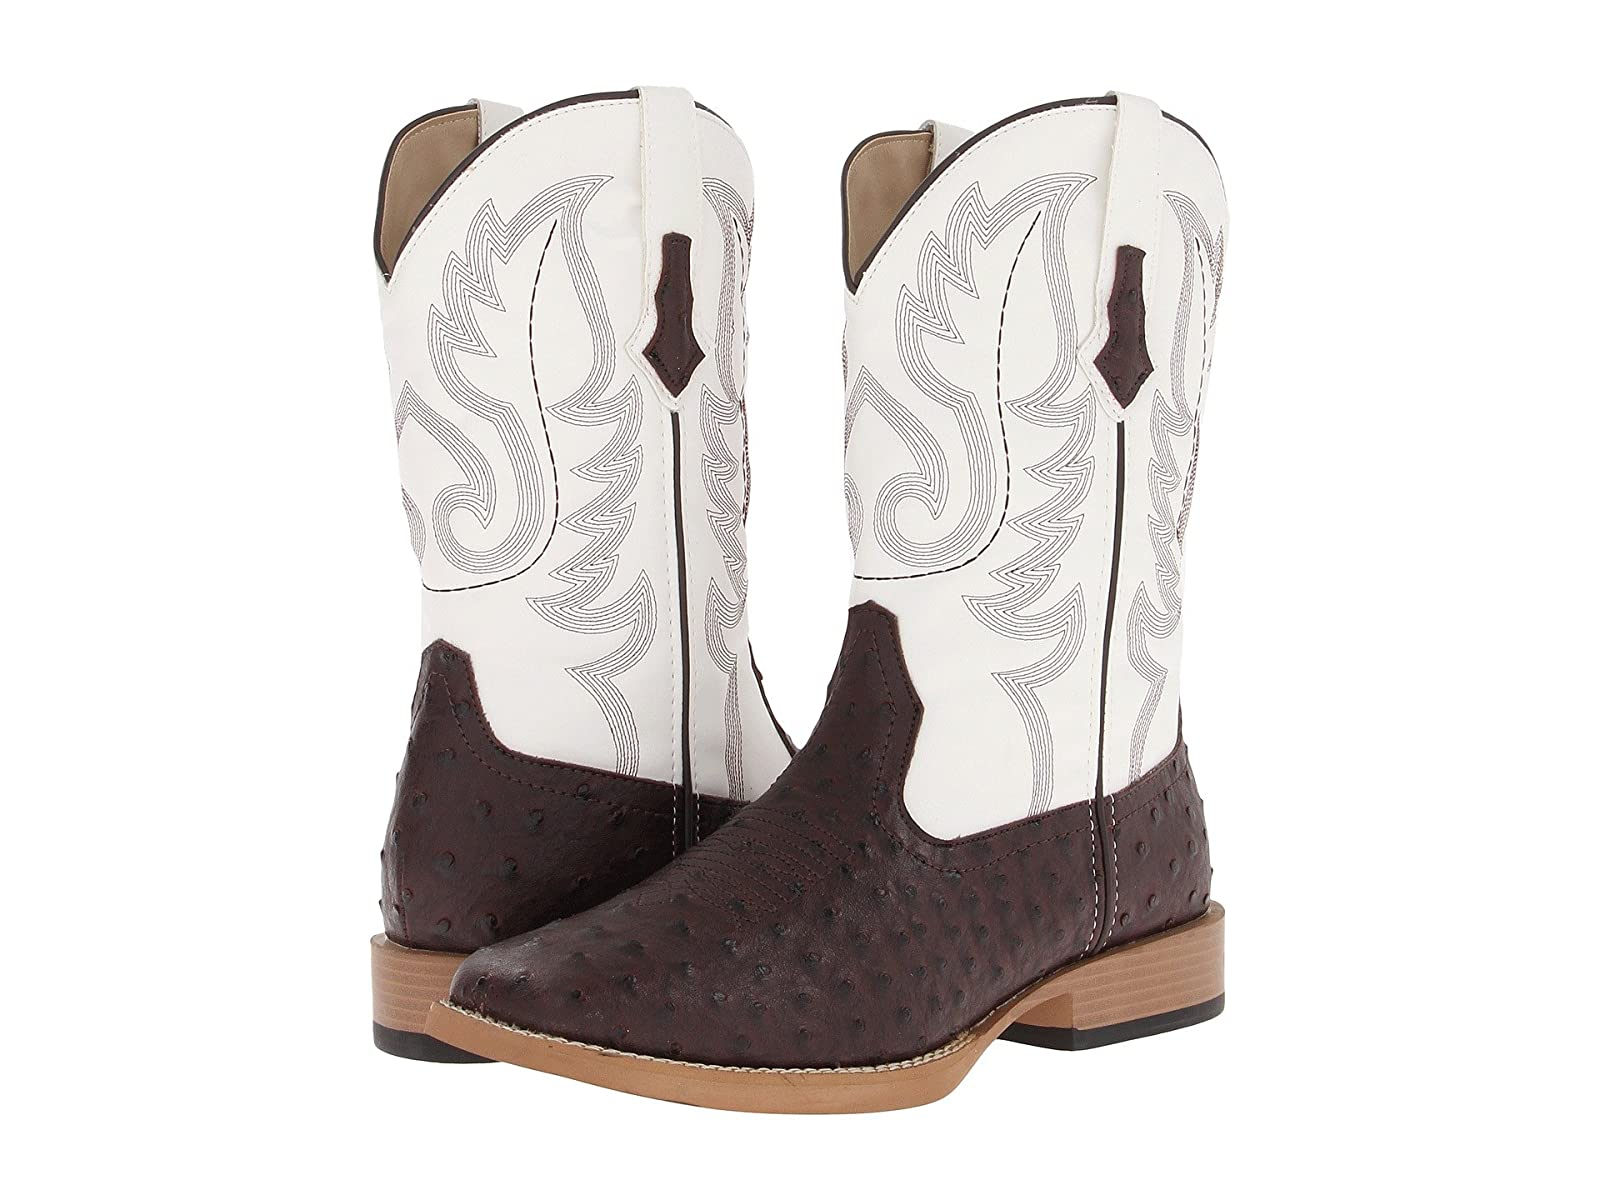 Roper Ostrich Print Square Toe Cowboy BootEconomical and quality shoes